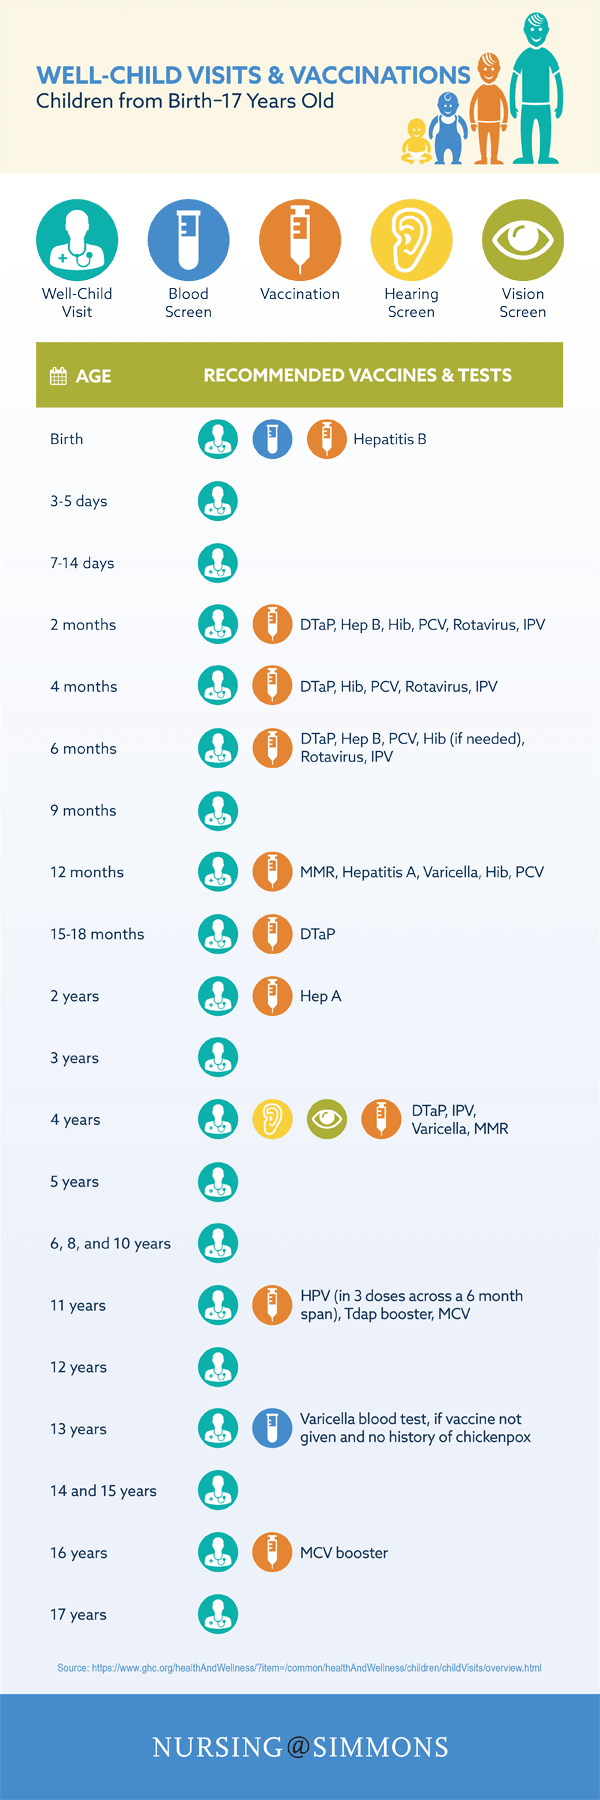 Simmons Routine Vaccination Schedule